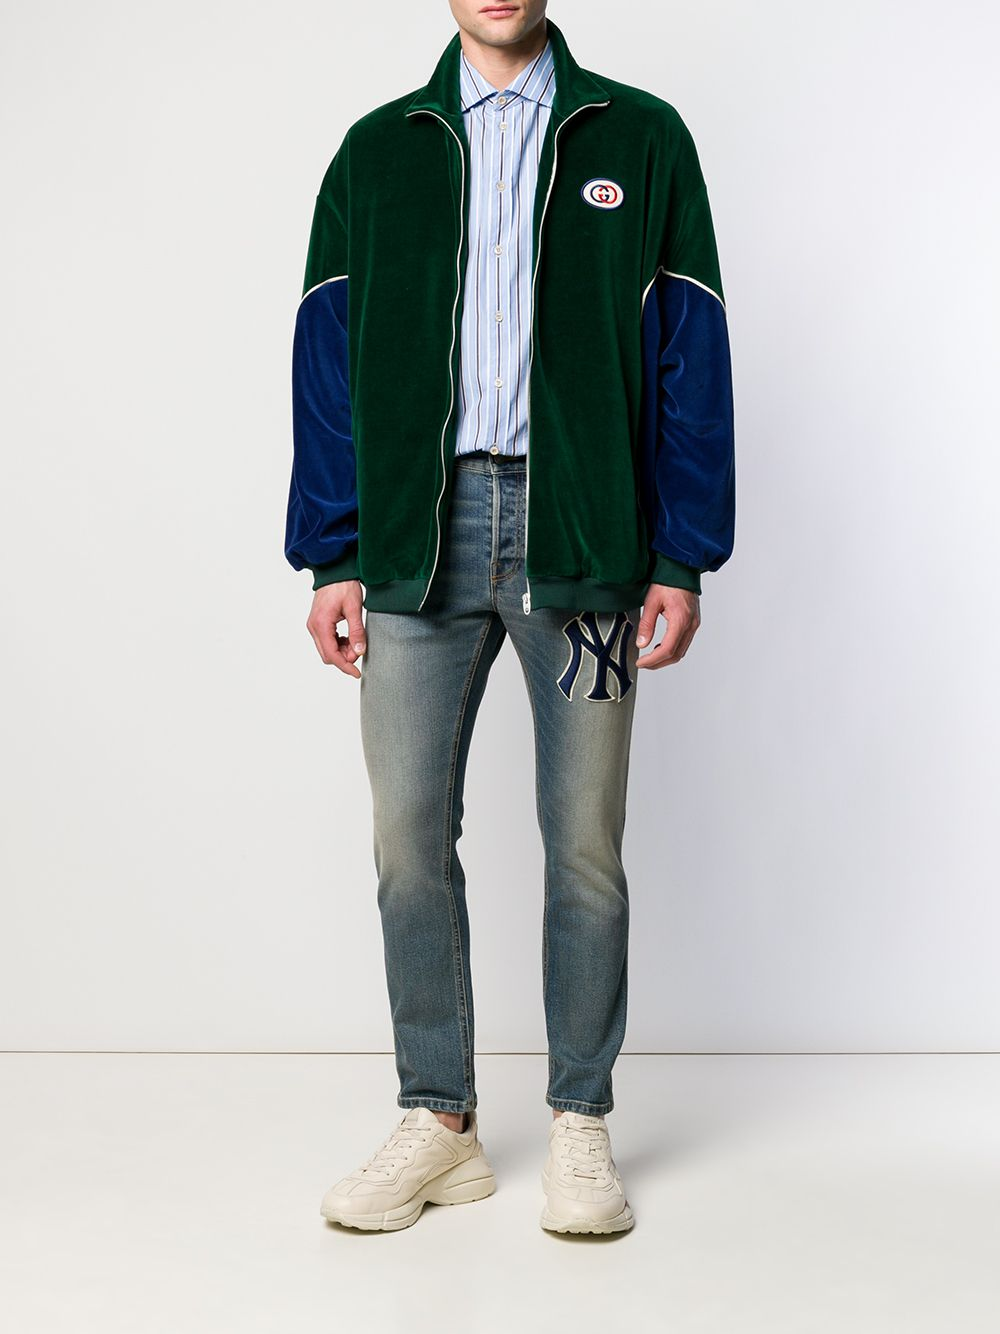 panelled green and blue velvet jacket with front white zip GUCCI      560253-XJA3J3055